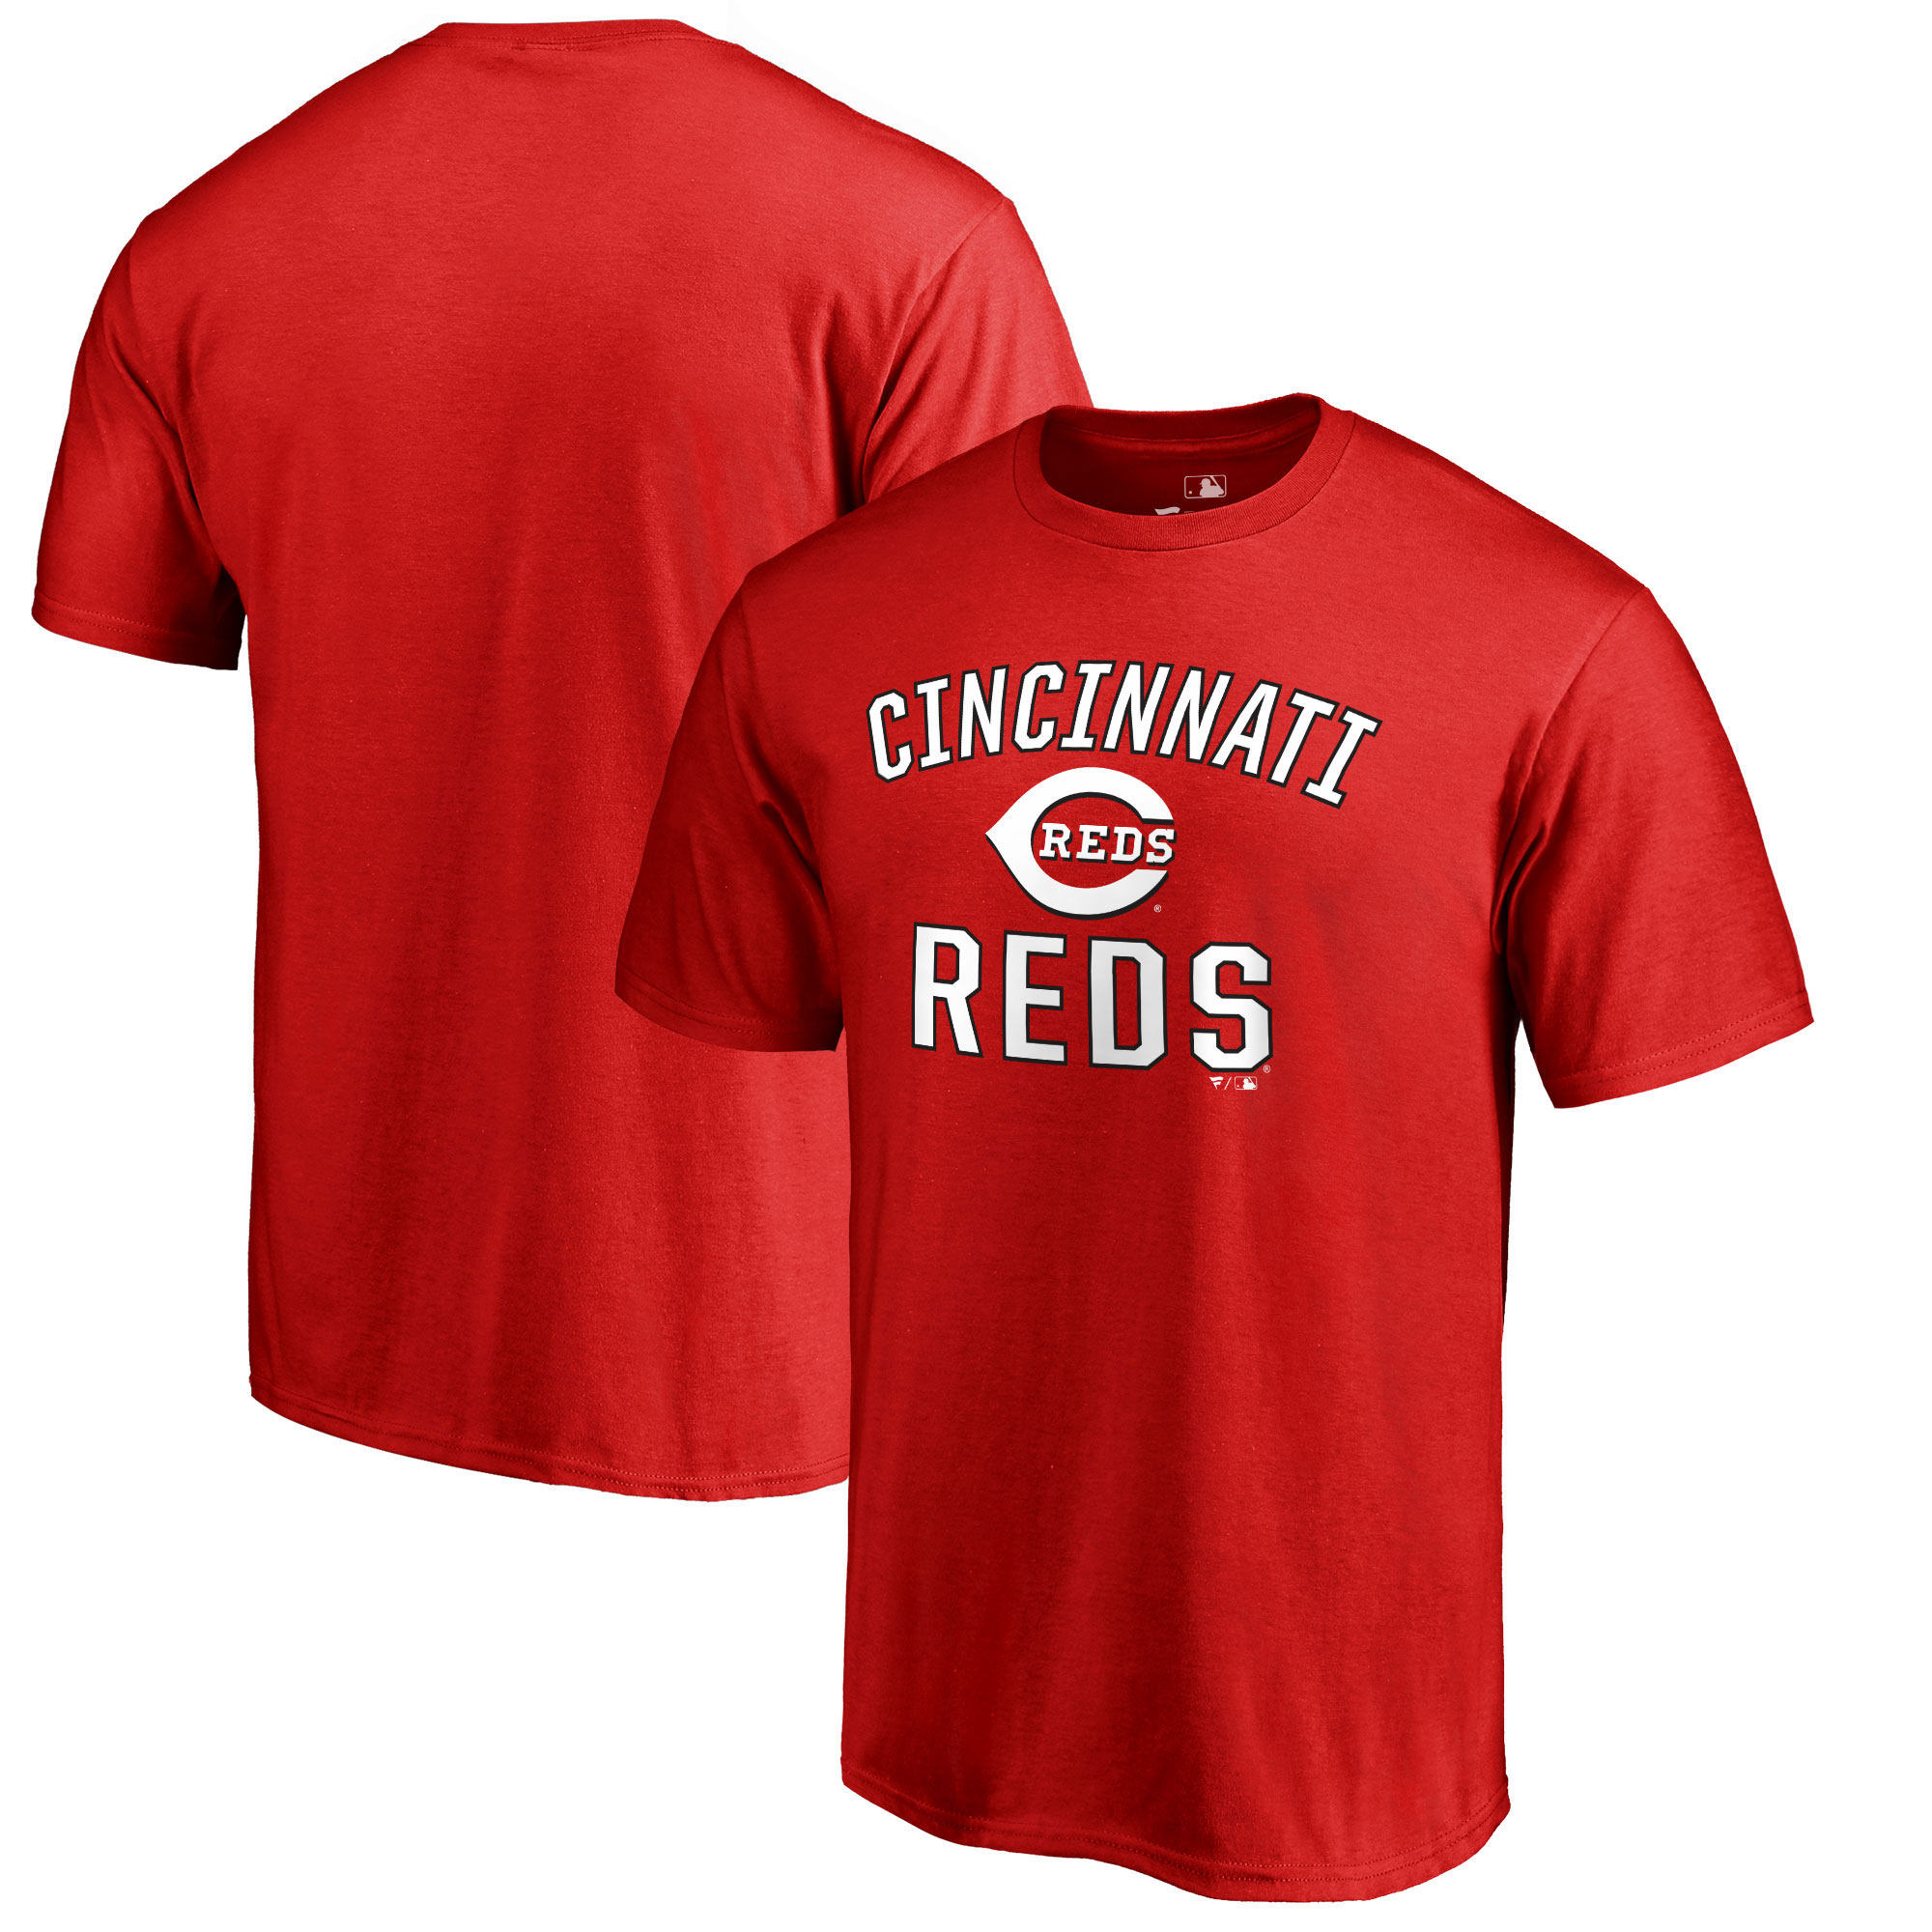 Cincinnati Reds Fanatics Branded Victory Arch T-Shirt - Red